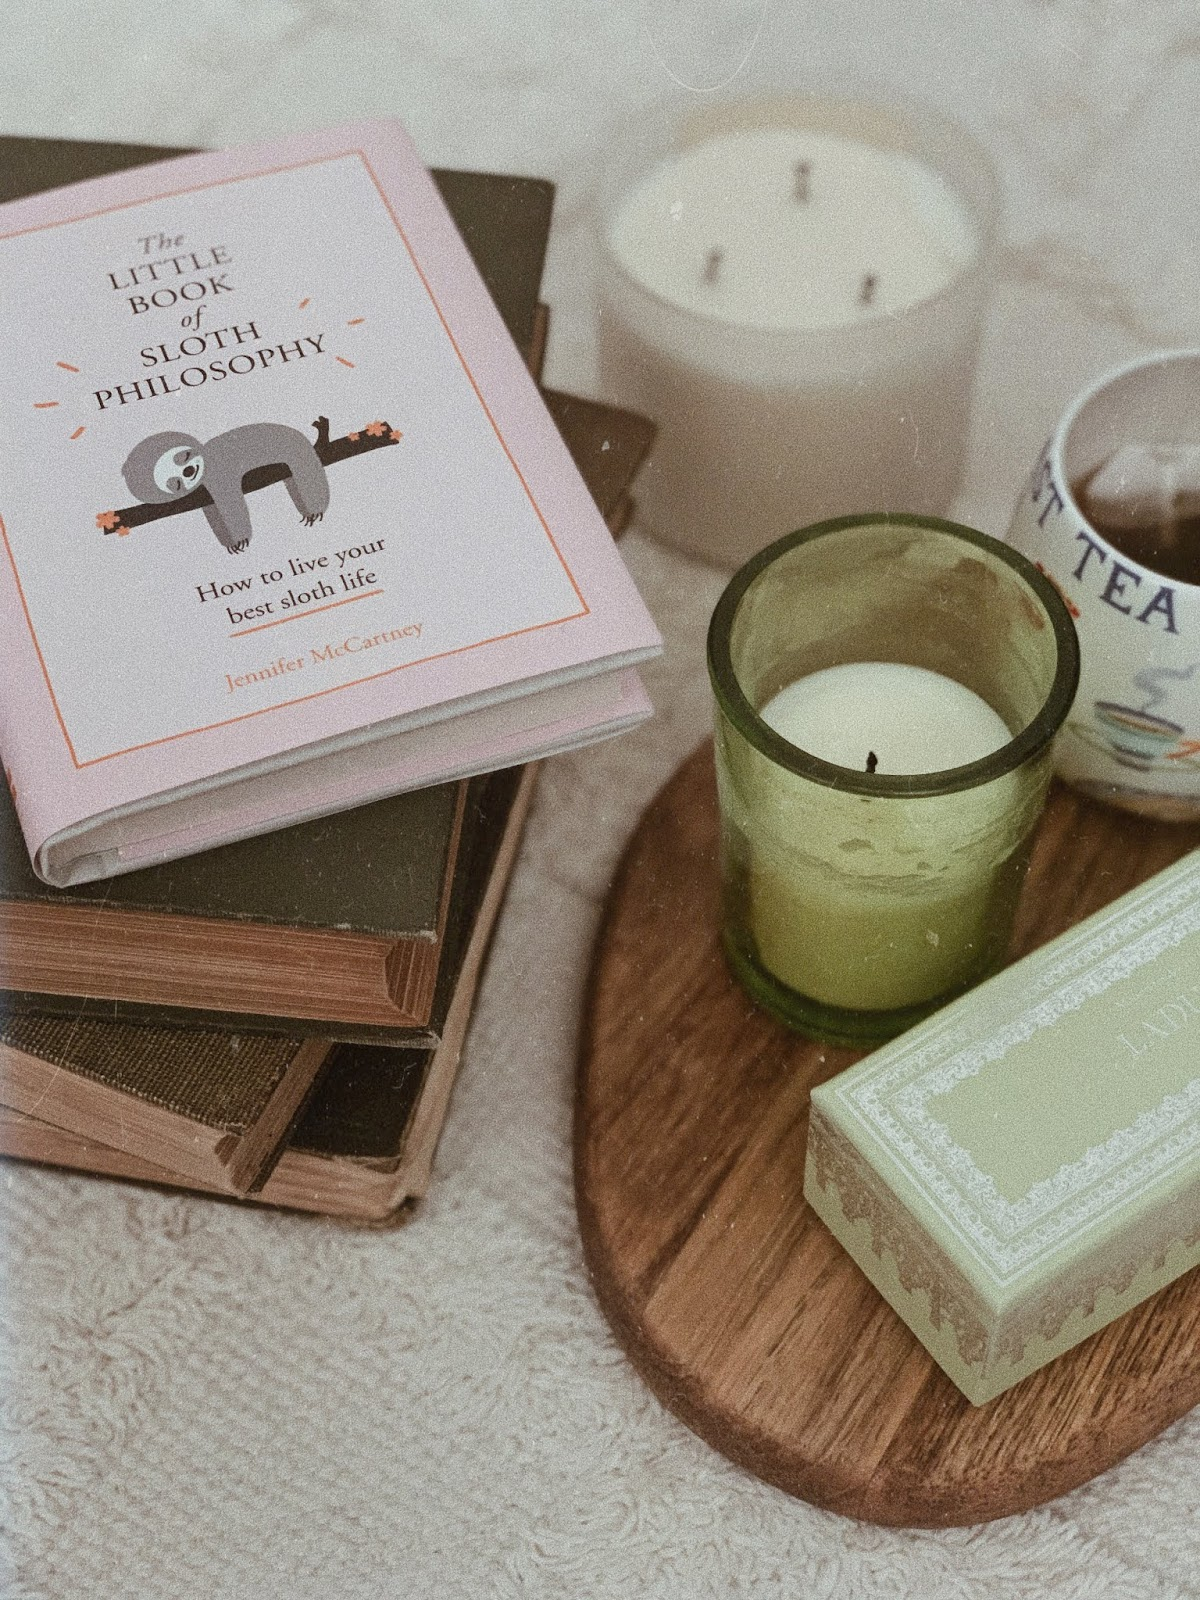 flatlay of the little book of sloth philosophy by jennifer mccartney - book review | book book bitch